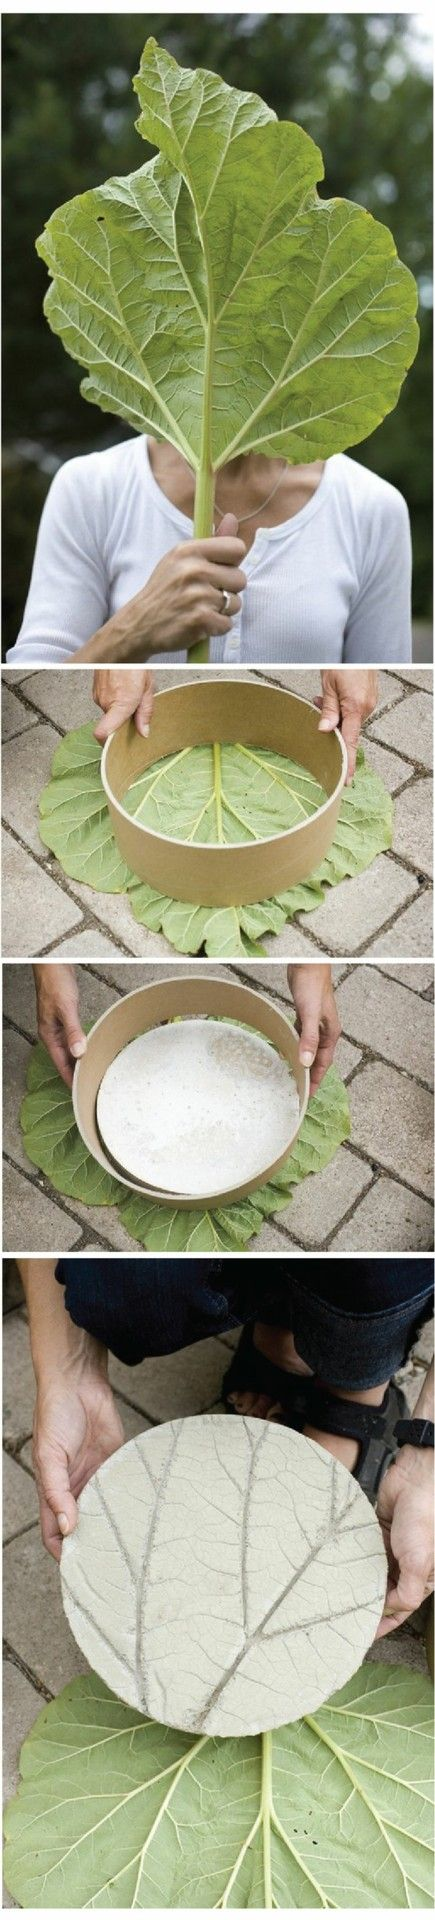 Steps to make a pretty concrete stepping stone, or tile.